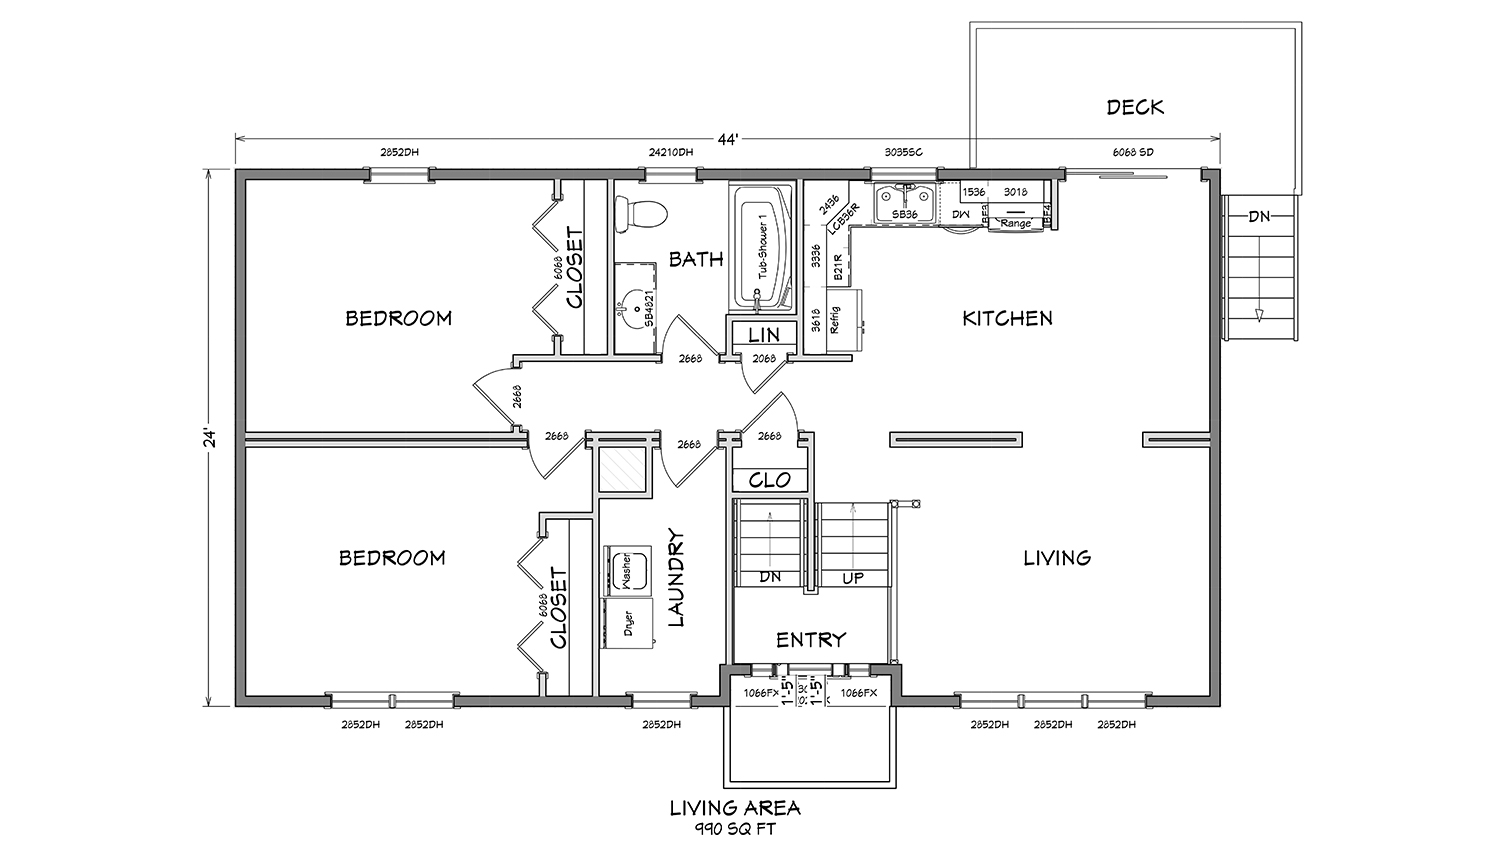 bl001 cape cod modular home floor plan 01 glenco inc